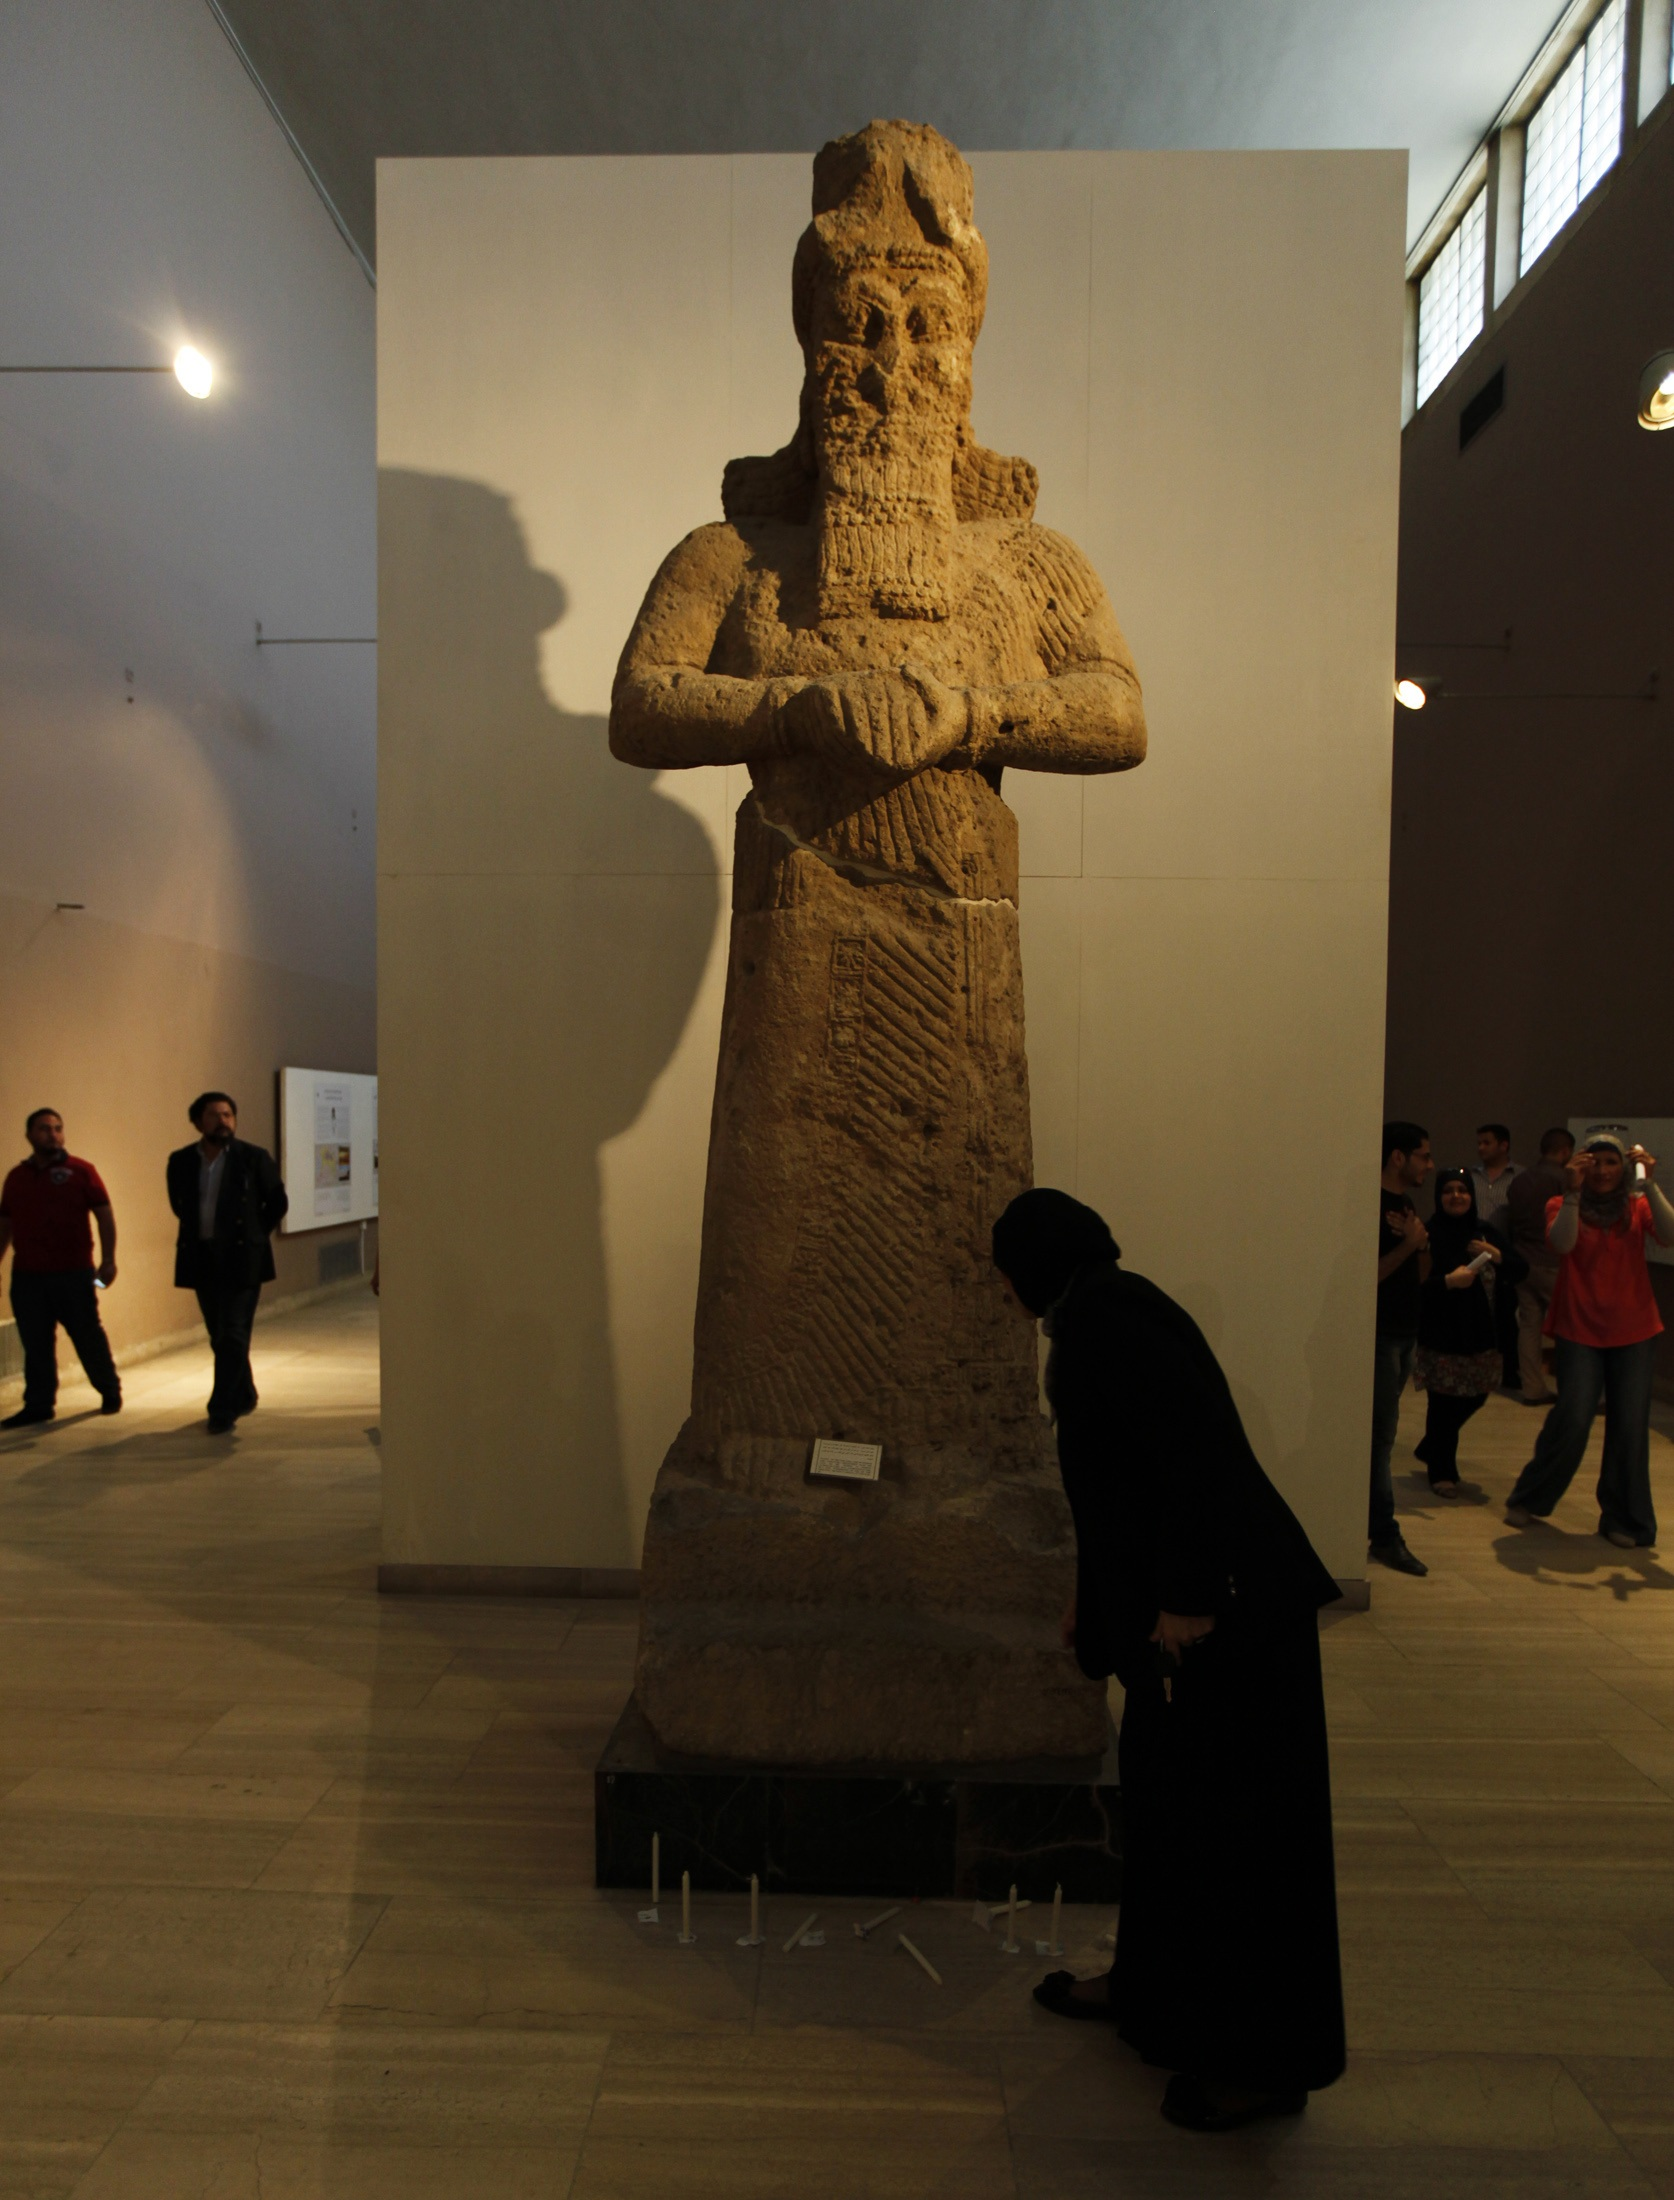 A woman stands next to an Assyrian statue inside the National Museum of Iraq in Baghdad.